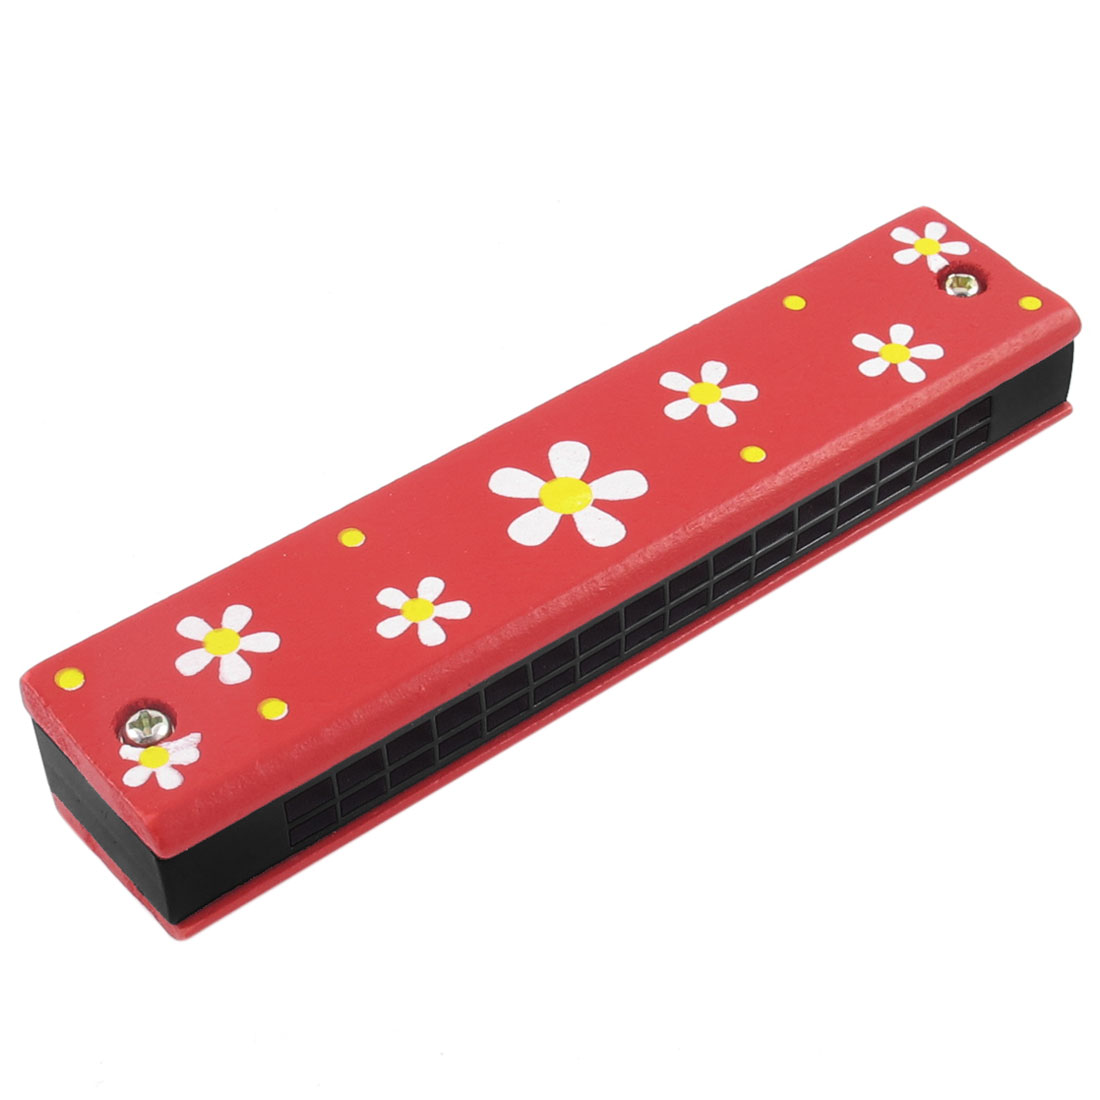 Portable Wooden Harmonica Mouth Organ w Dual Rows 32 Holes Red Floral Print Educational Toy for Children